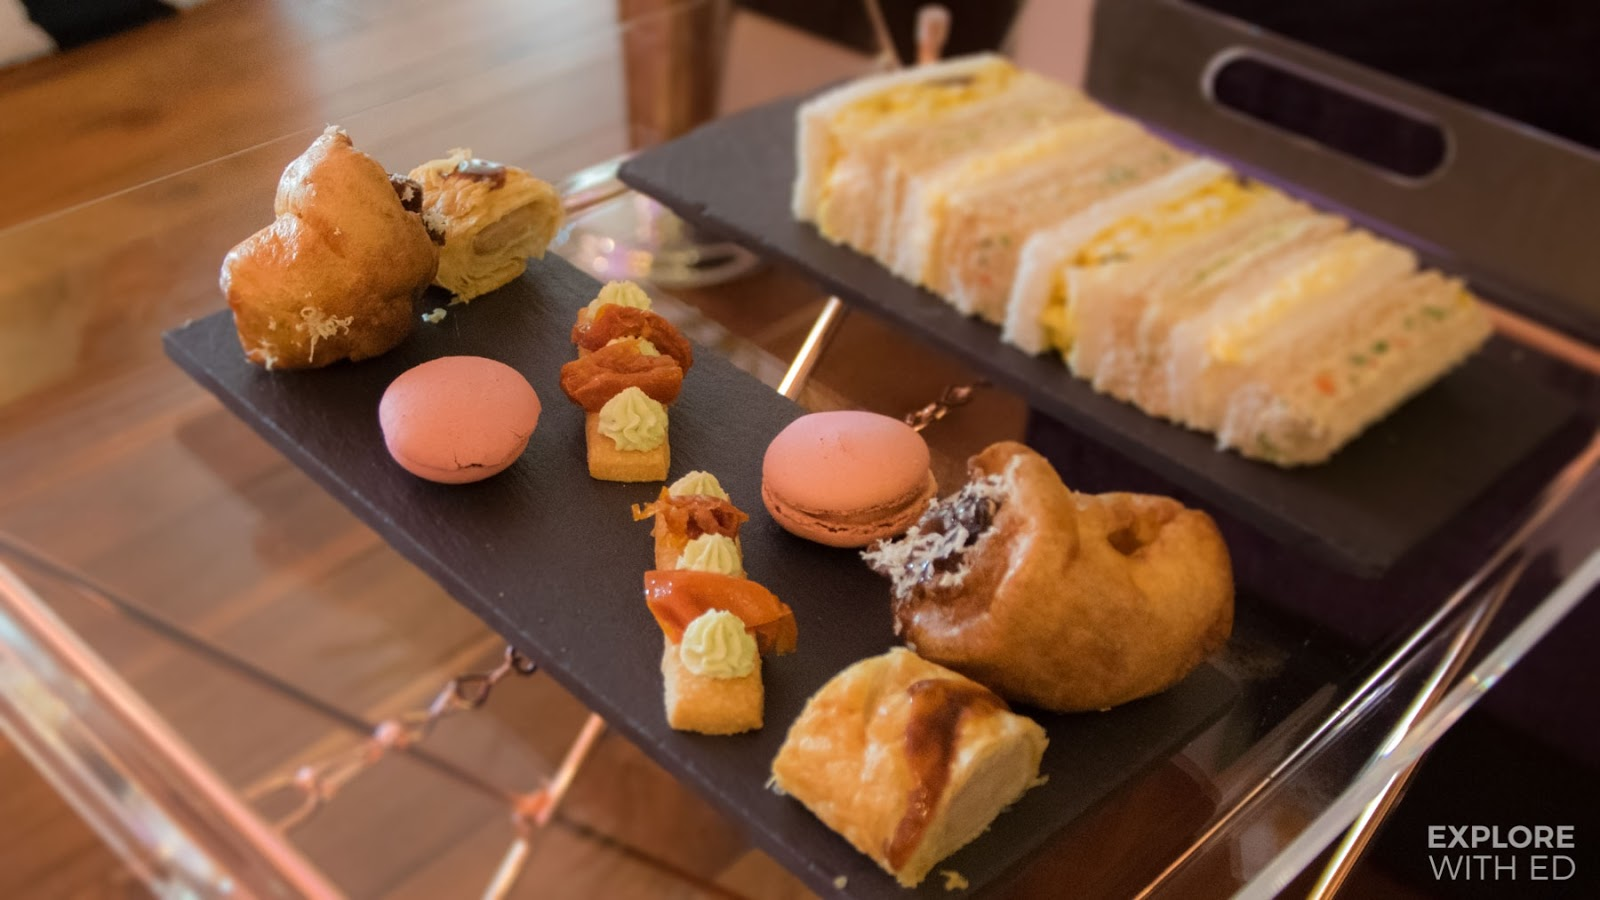 The sublime savouries on slate, first course of Mulberry Bar Afternoon Tea